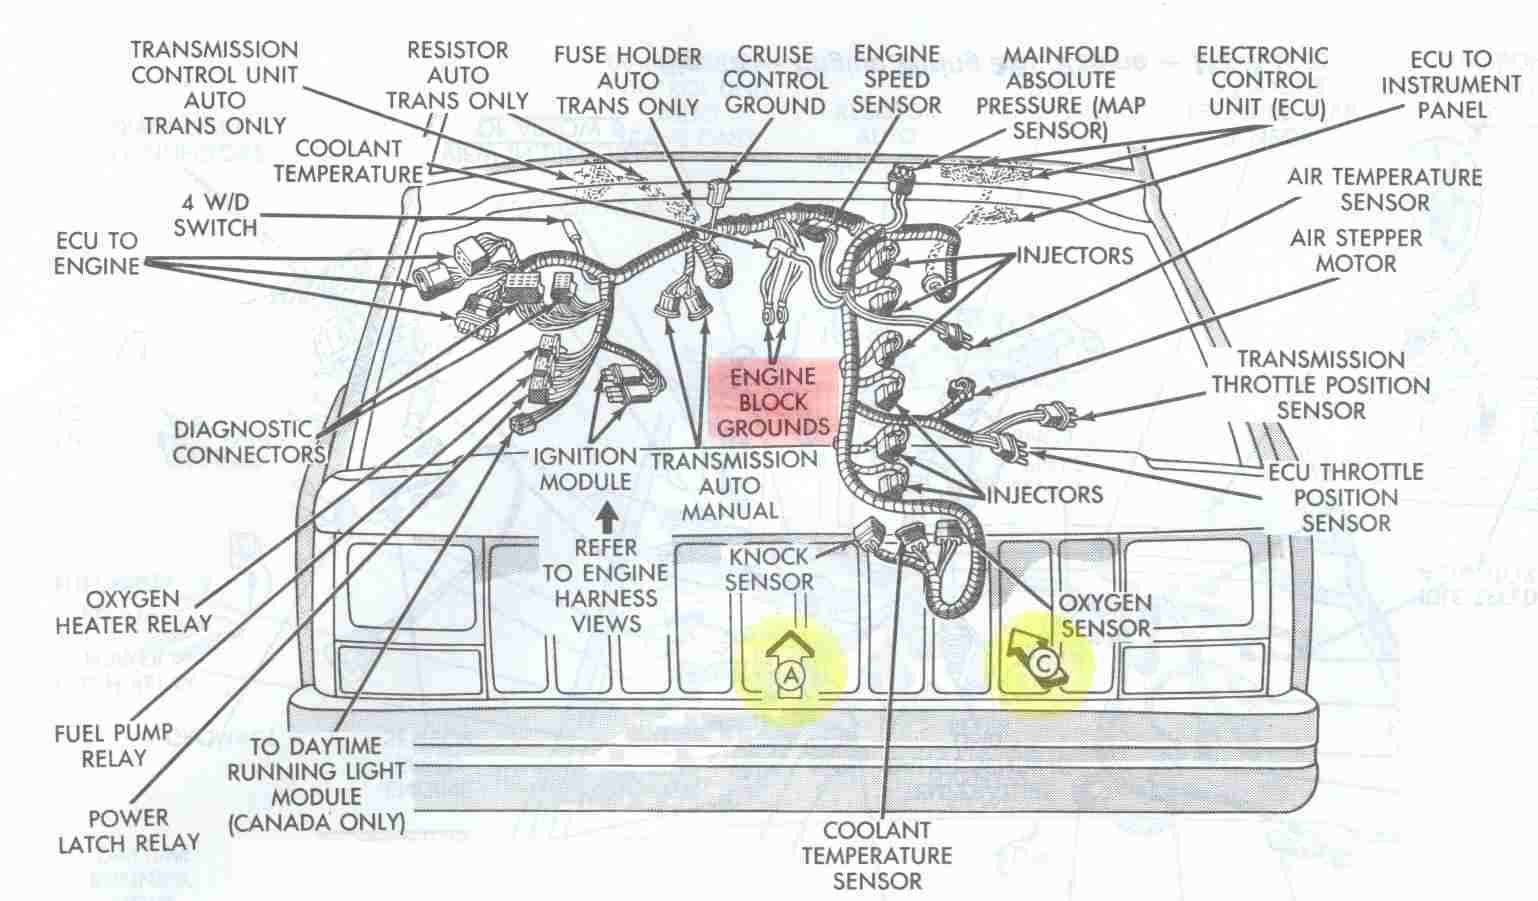 Engine Bay schematic showing major electrical ground points for 4.0L on 01 wrangler wiring diagram, 01 mustang wiring diagram, 01 dakota wiring diagram,